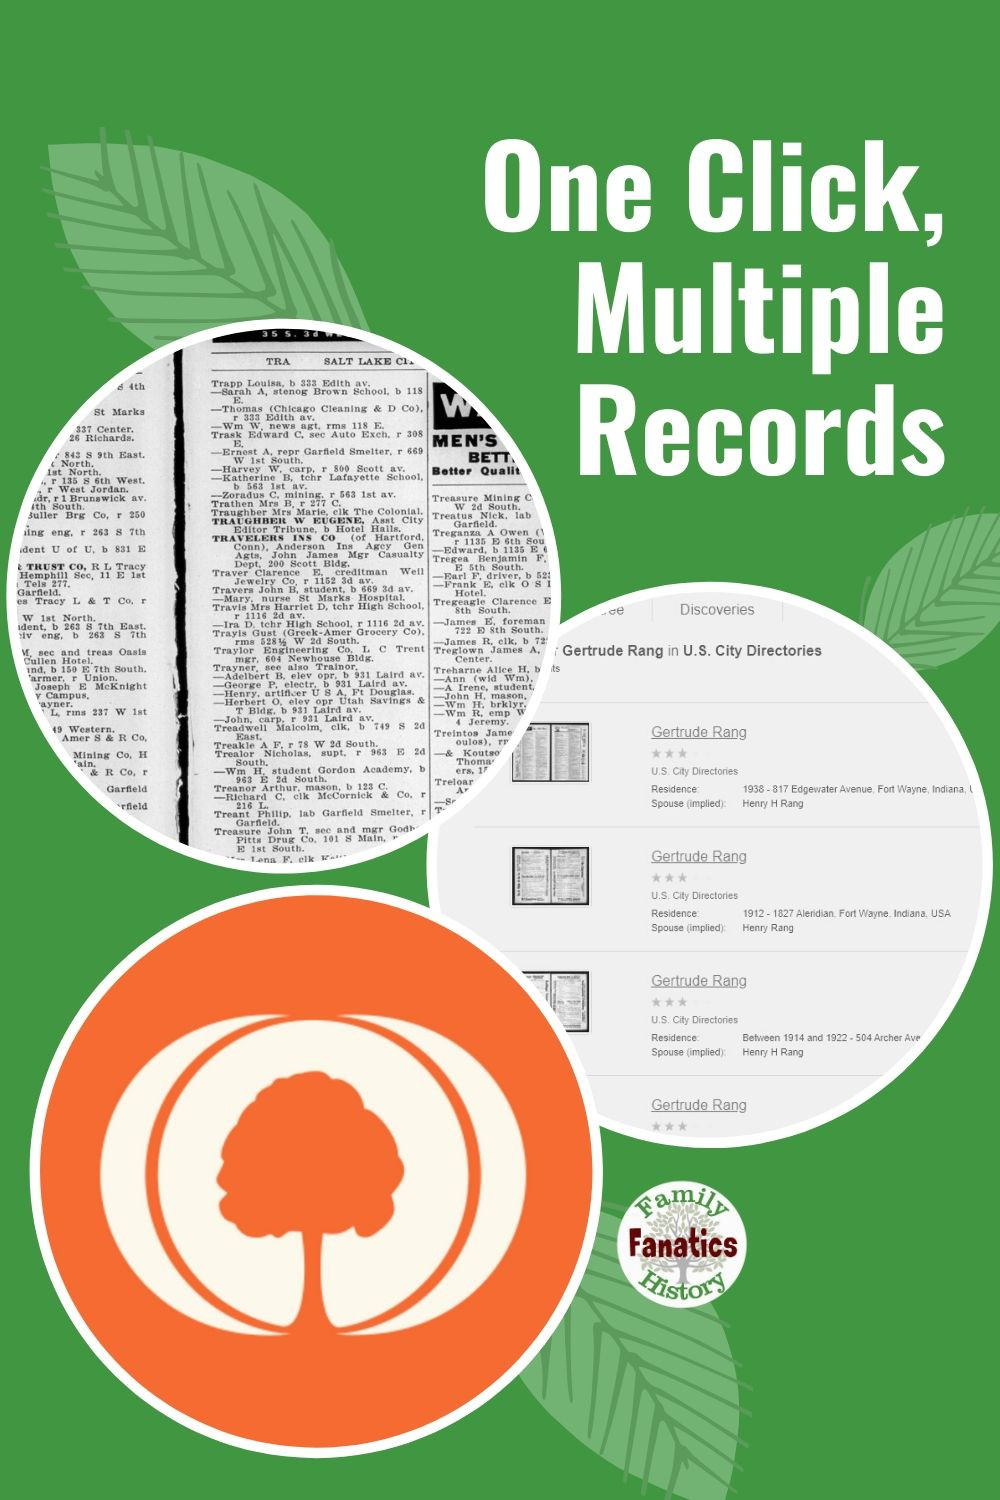 Three circles featuring the MyHeritage logo and two images from city directories and the title One Click Multiple Records